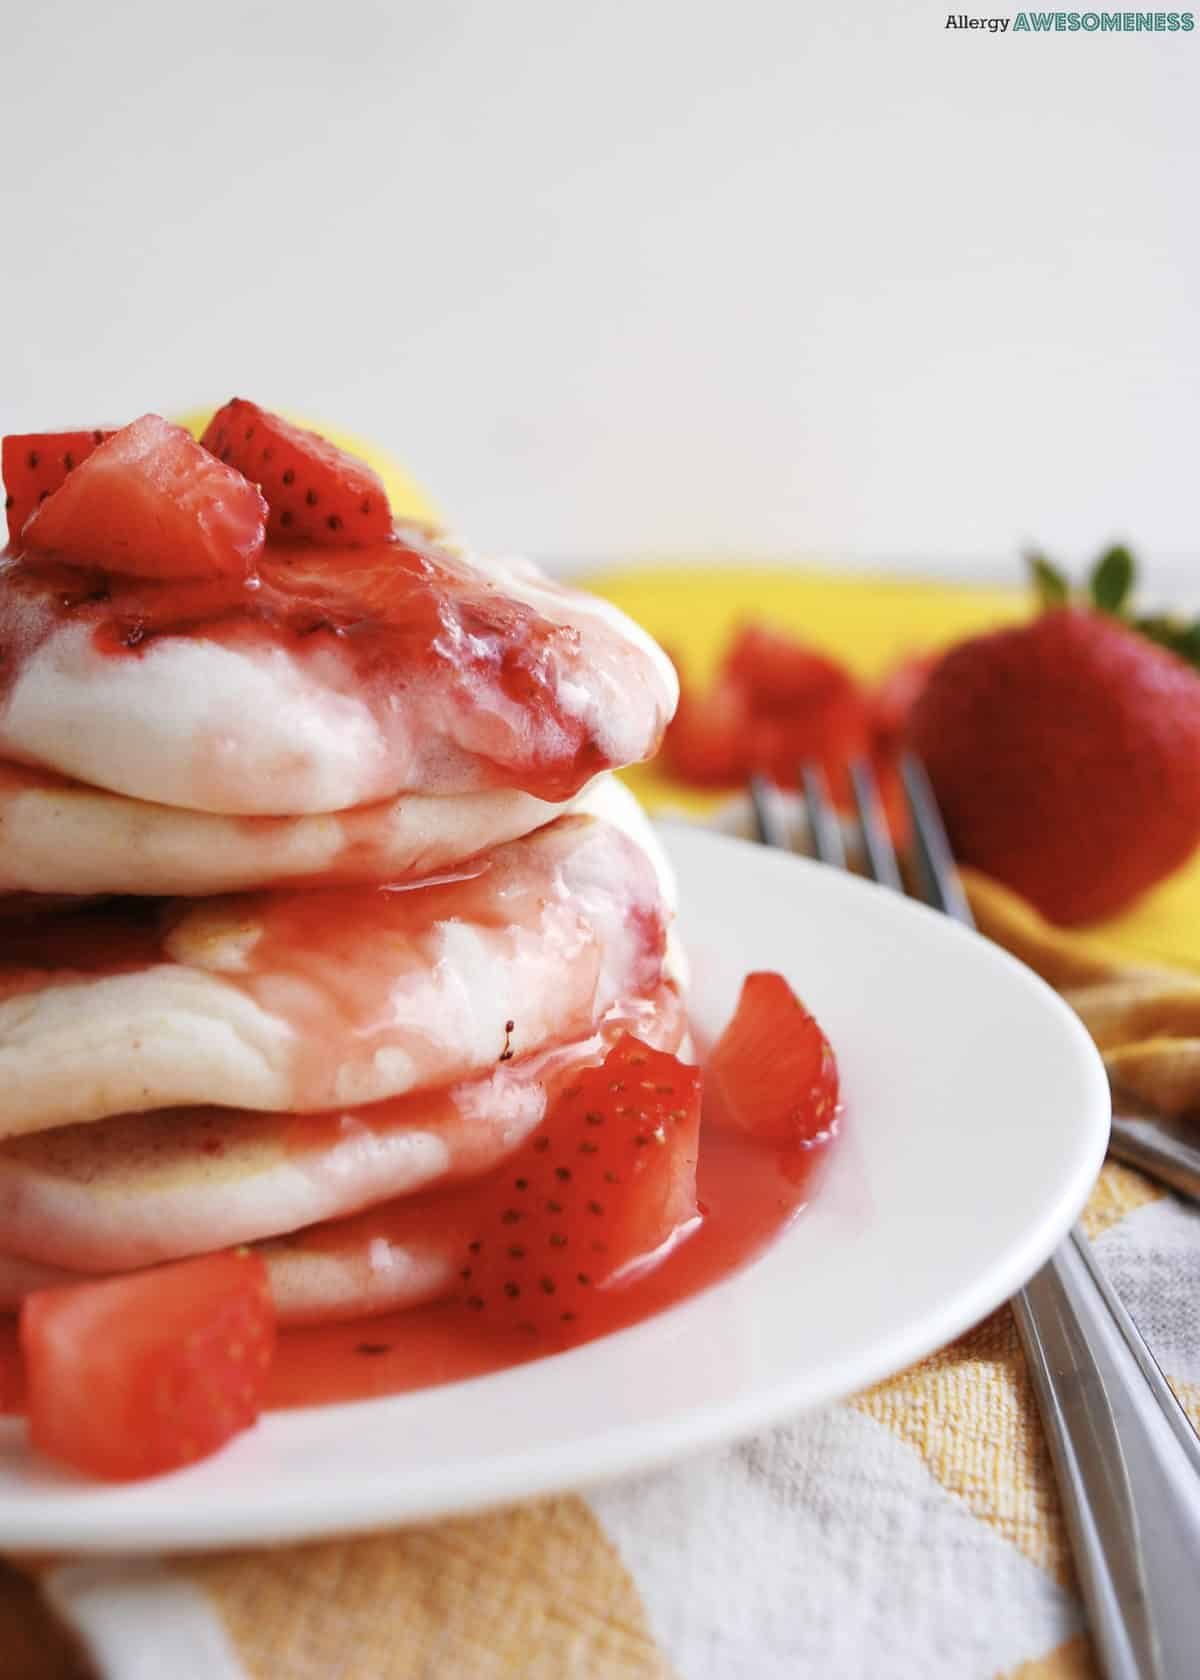 Soft, fluffy strawberry pancakes drizzled with homemade strawberry syrup; they are allergy friendly, free of: gluten, dairy, egg, soy, peanut and tree nuts.